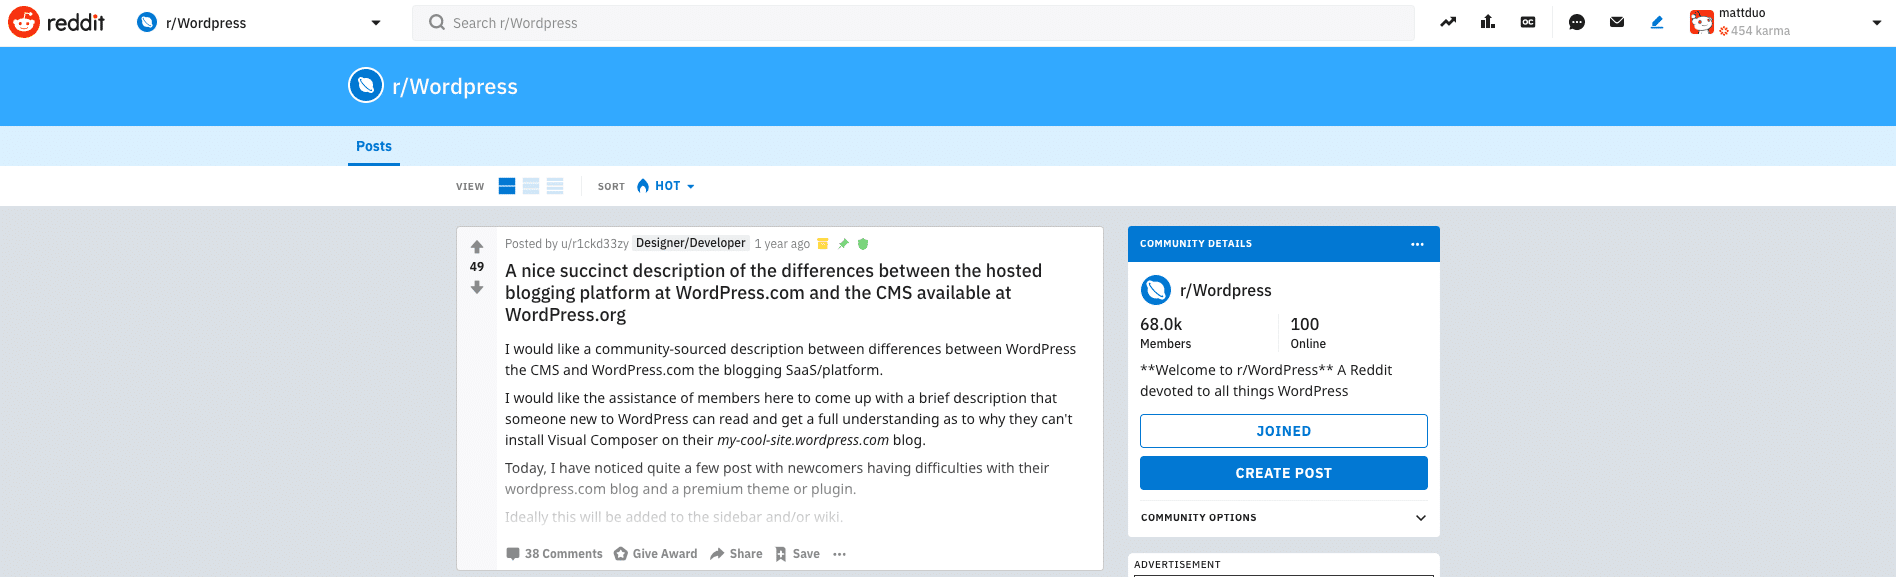 WordPress su Reddit